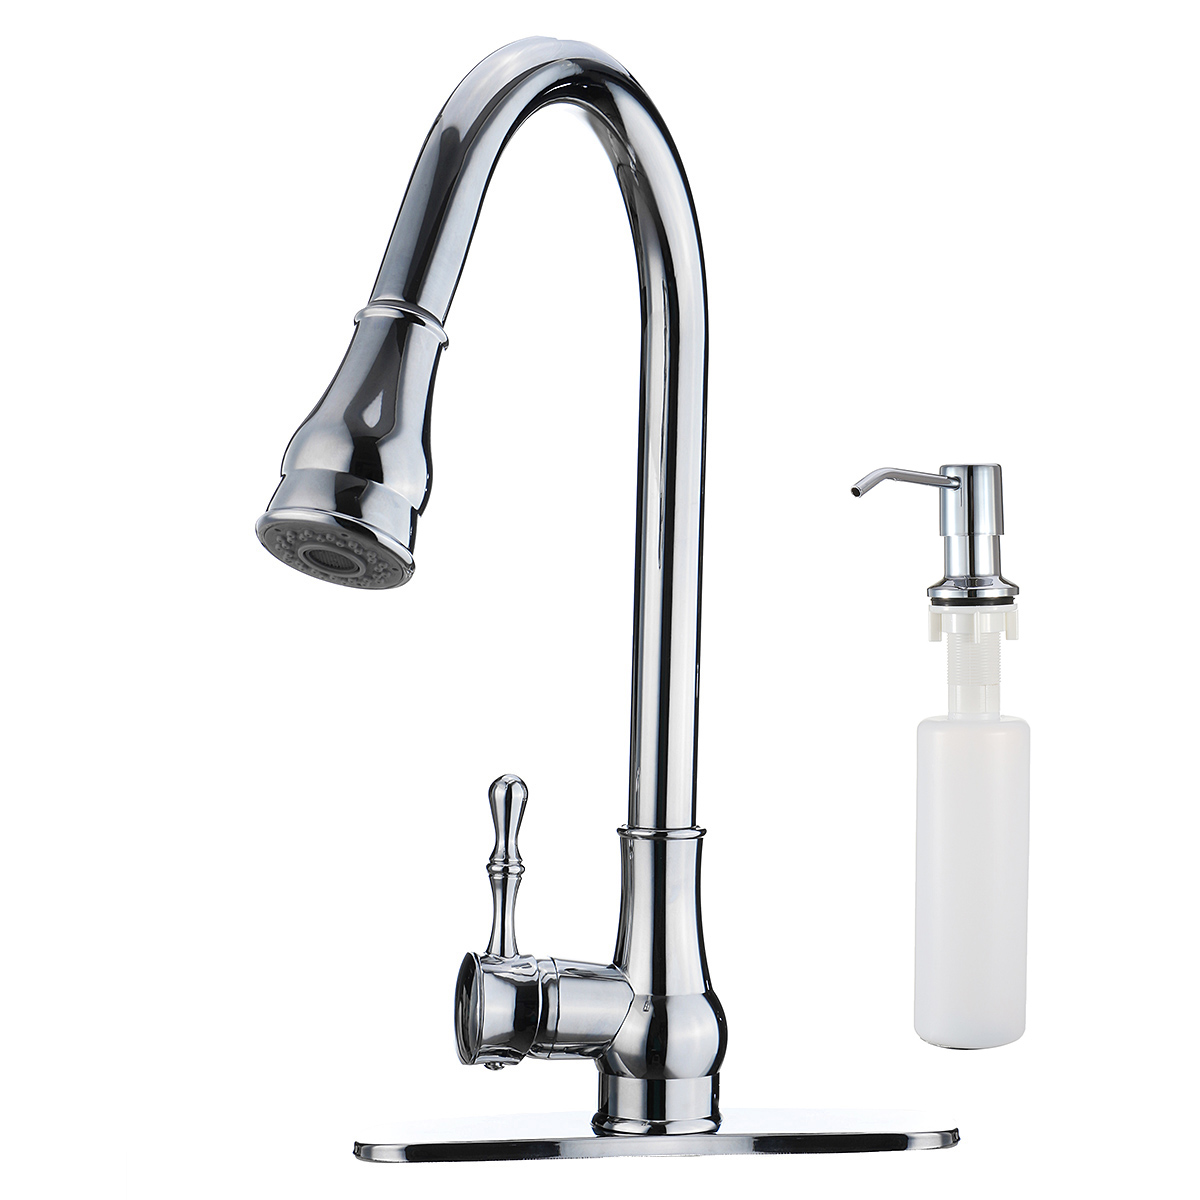 Brass Chrome Pull Out Kitchen Sink Faucet Spray 360Rotation With Soap Dispenser Cold And Hot Water Swivel Spout Sink Mixer Tap